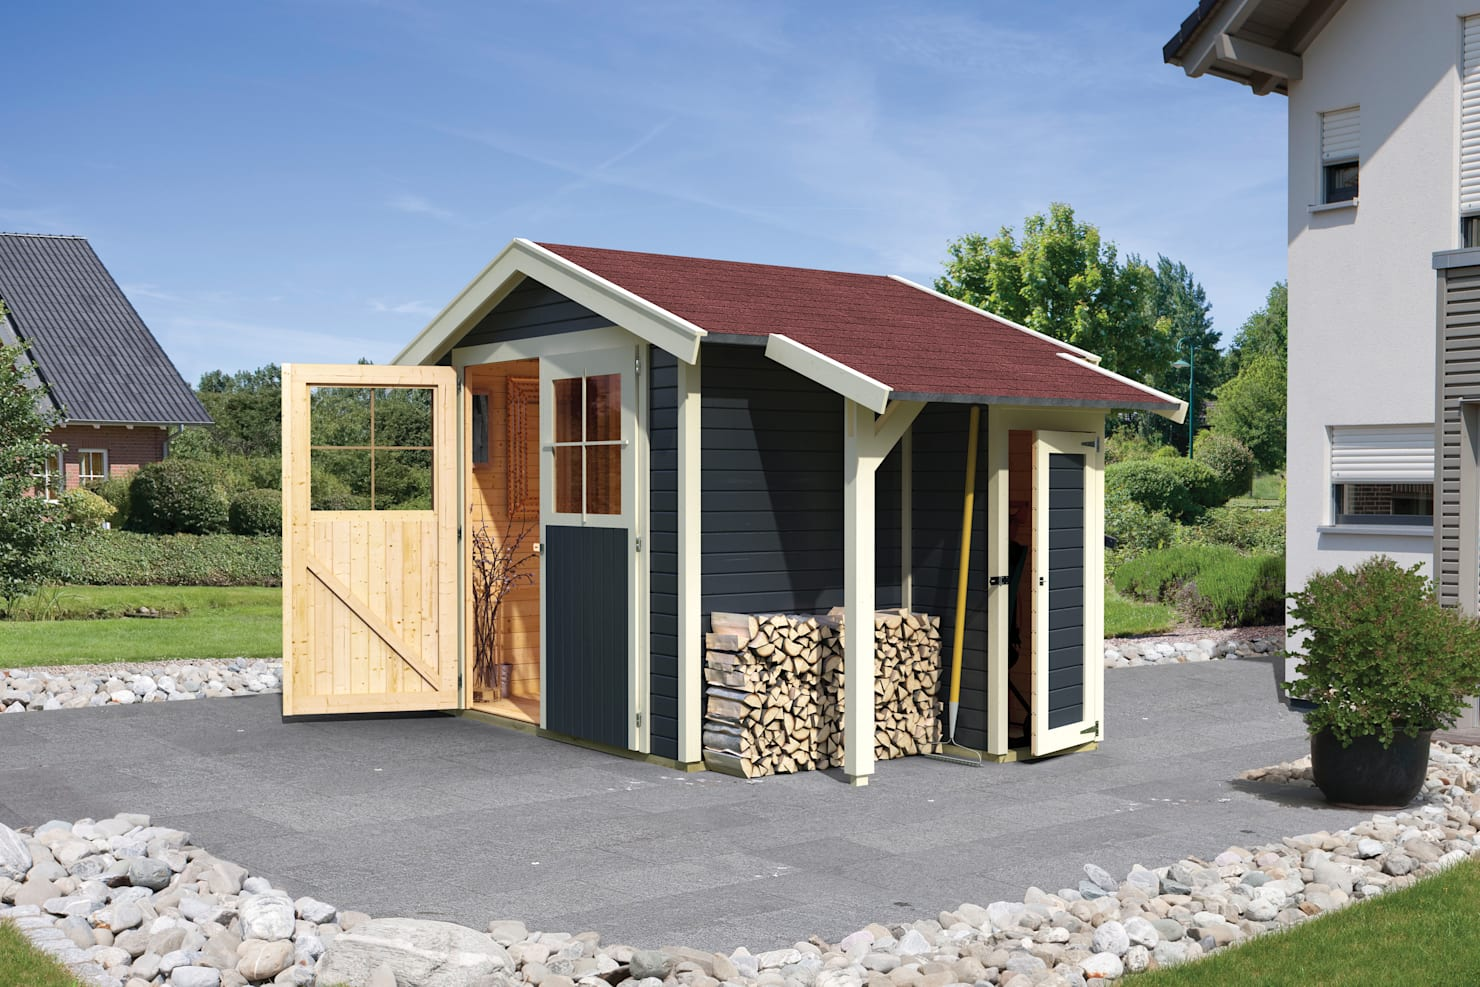 7 stylish garden outbuildings to consider